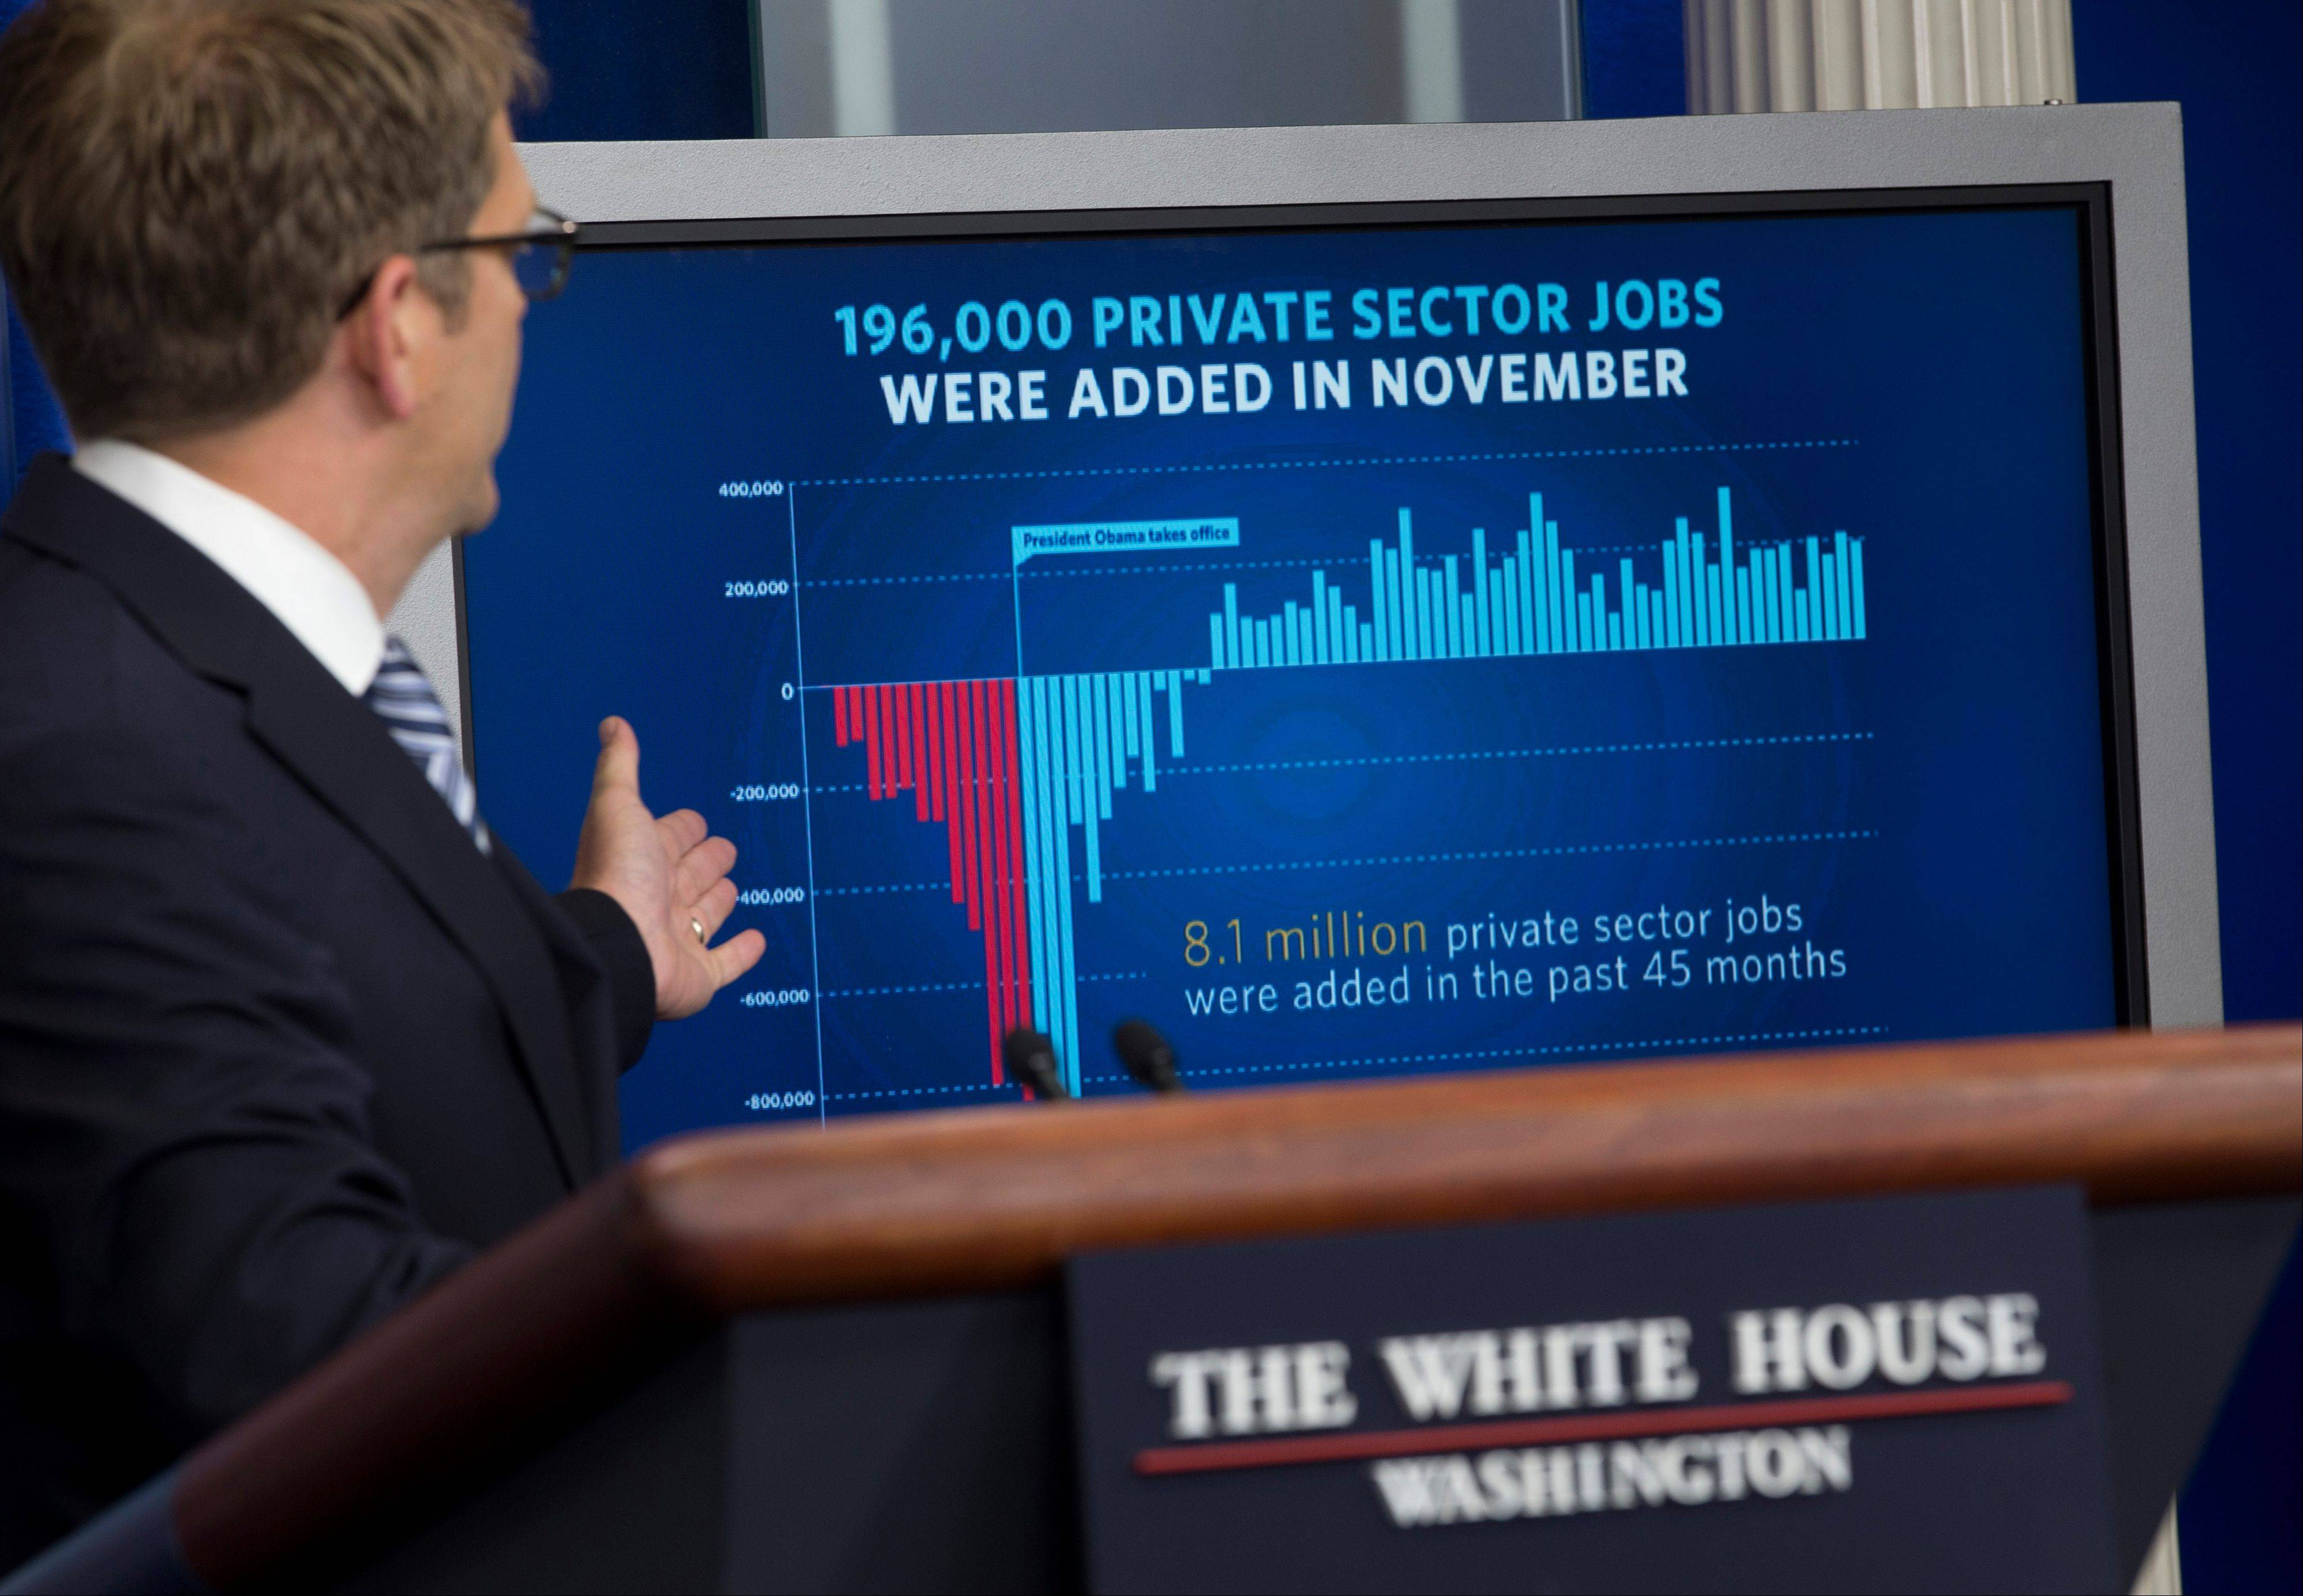 White House press secretary Jay Carney gestures to a display about job numbers during the daily news briefing at the White House in Washington.